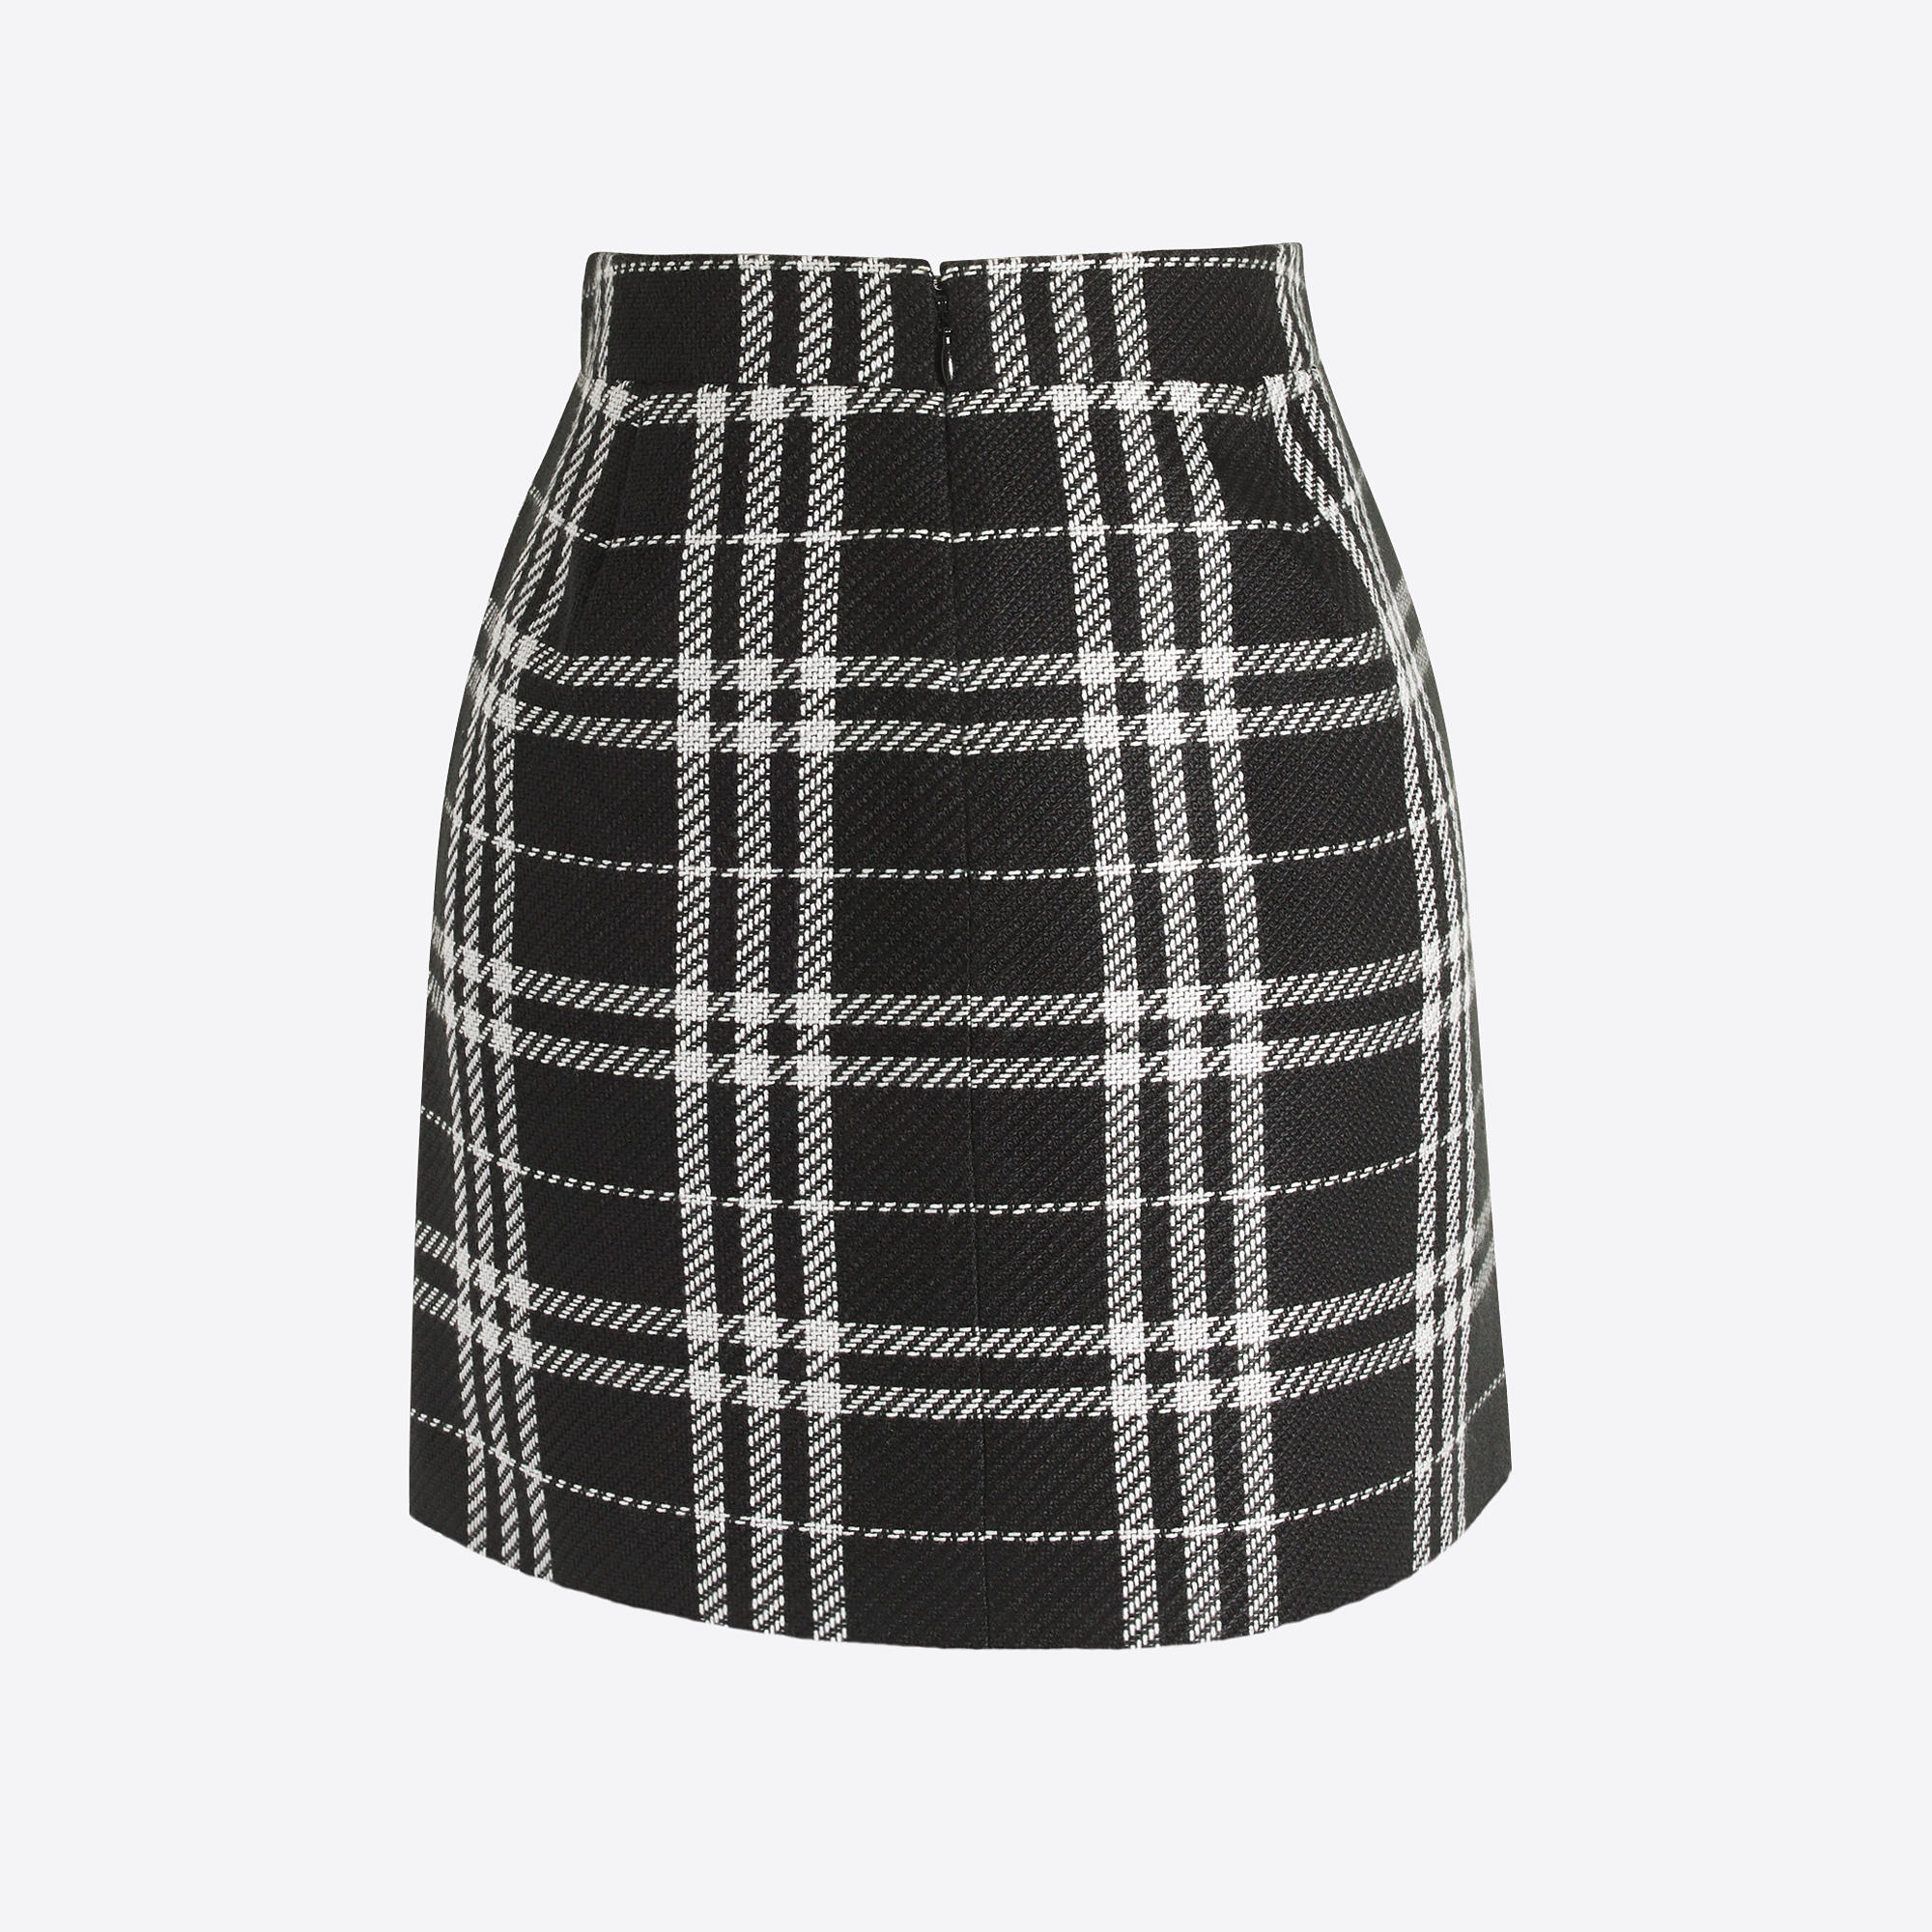 Plaid mini skirt : mini | J.Crew Factory